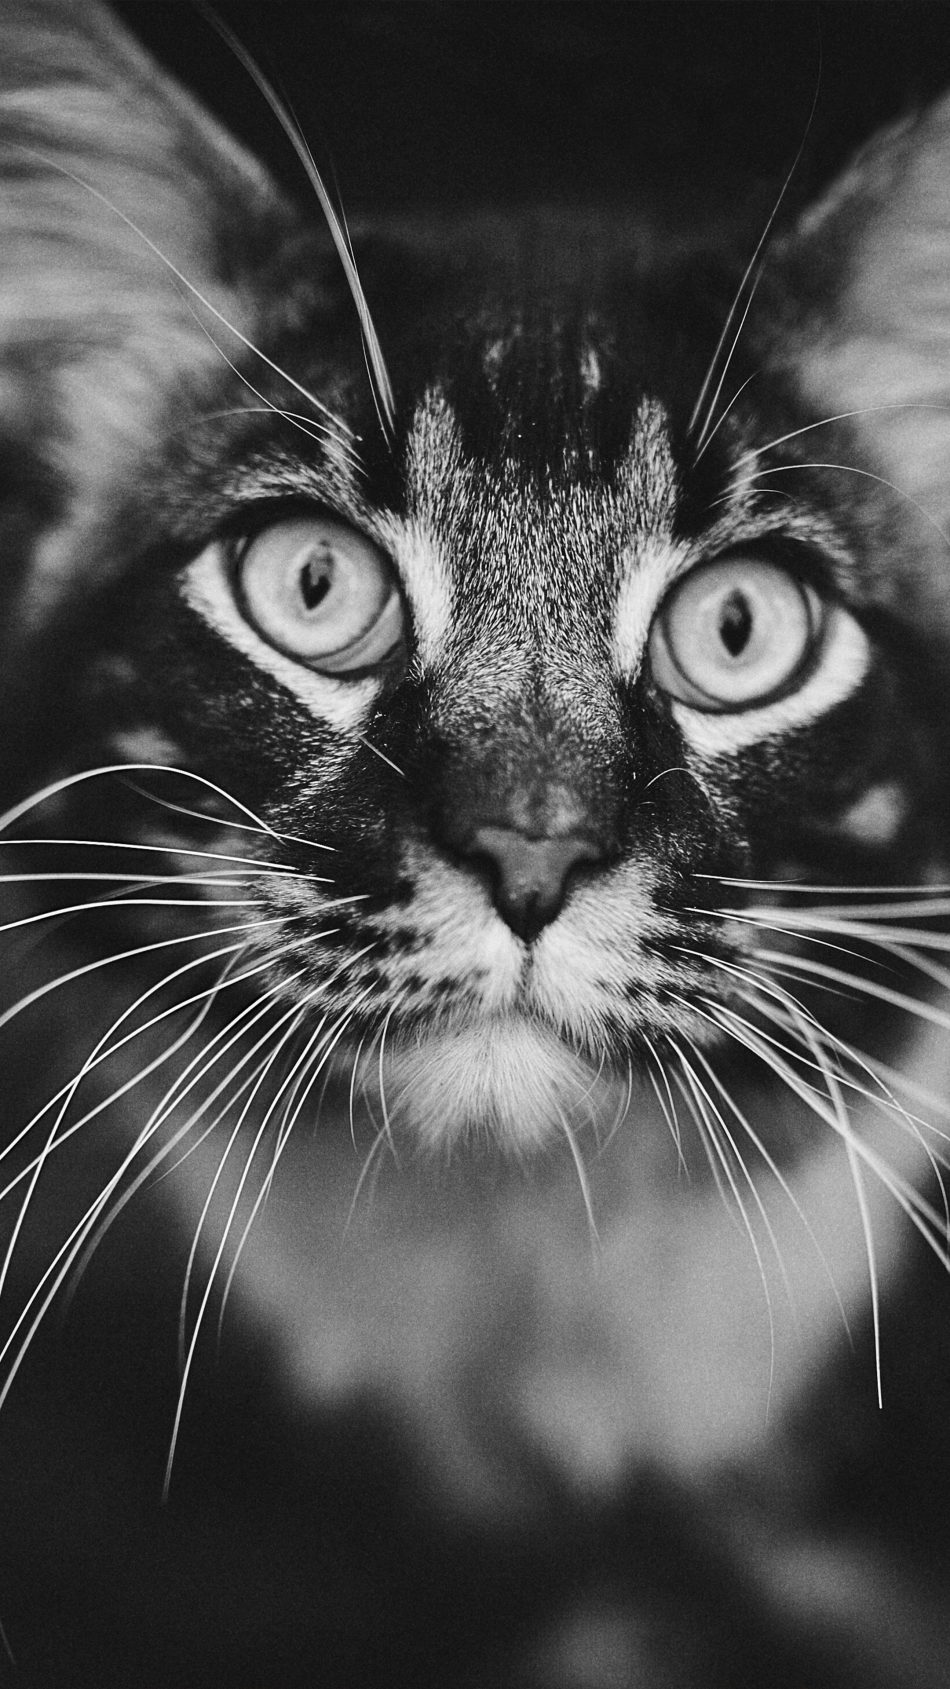 Staring Cat Black White 4k Ultra Hd Mobile Wallpaper